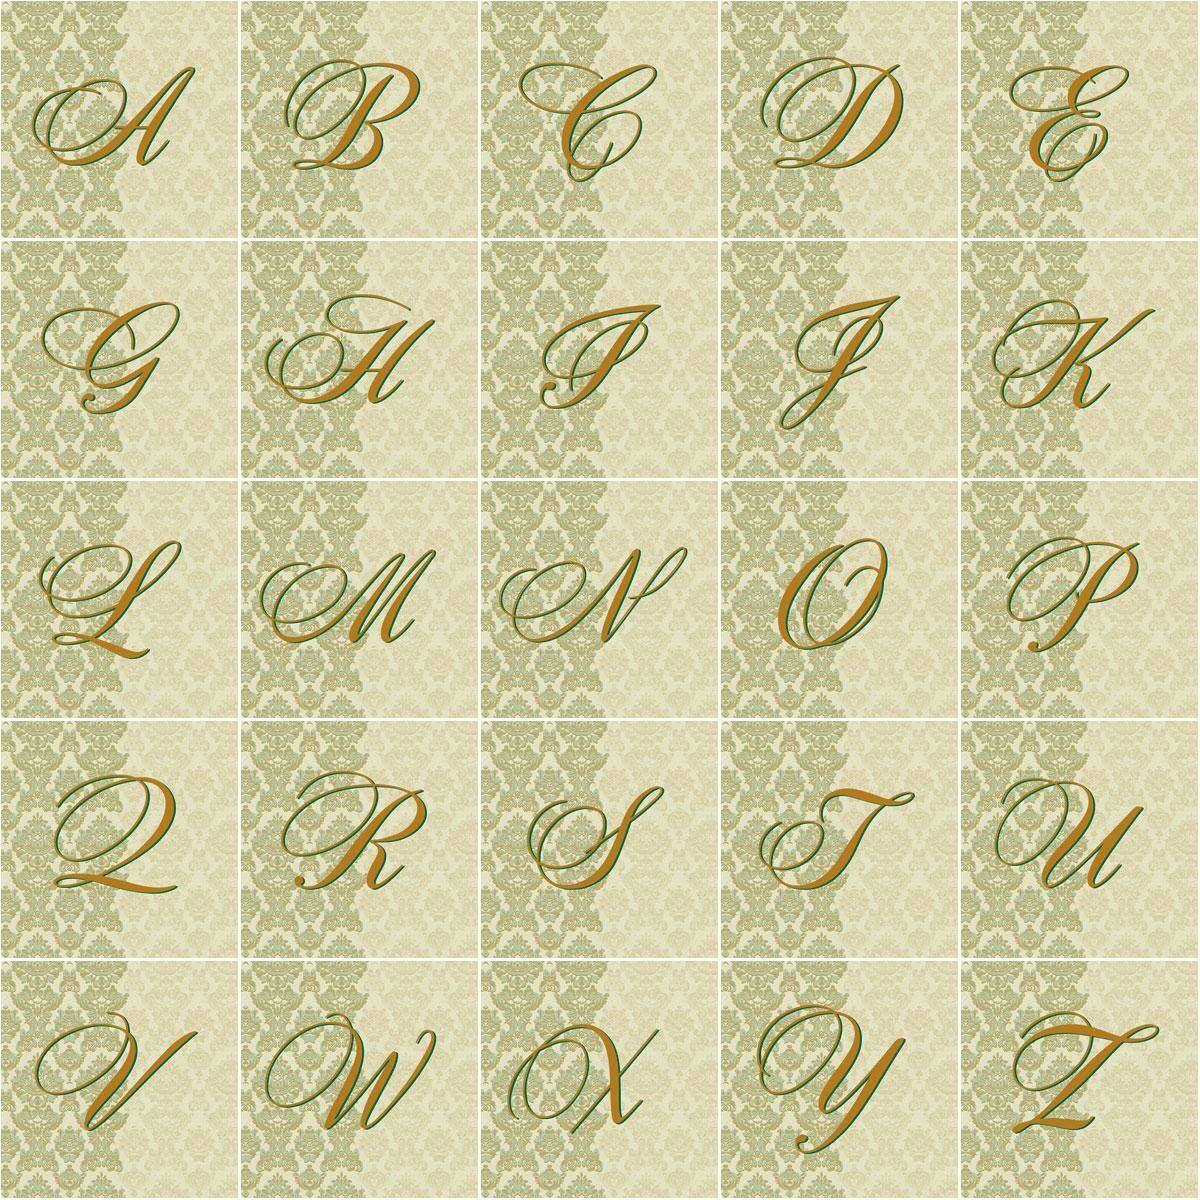 Regency Initial Envelope Seals